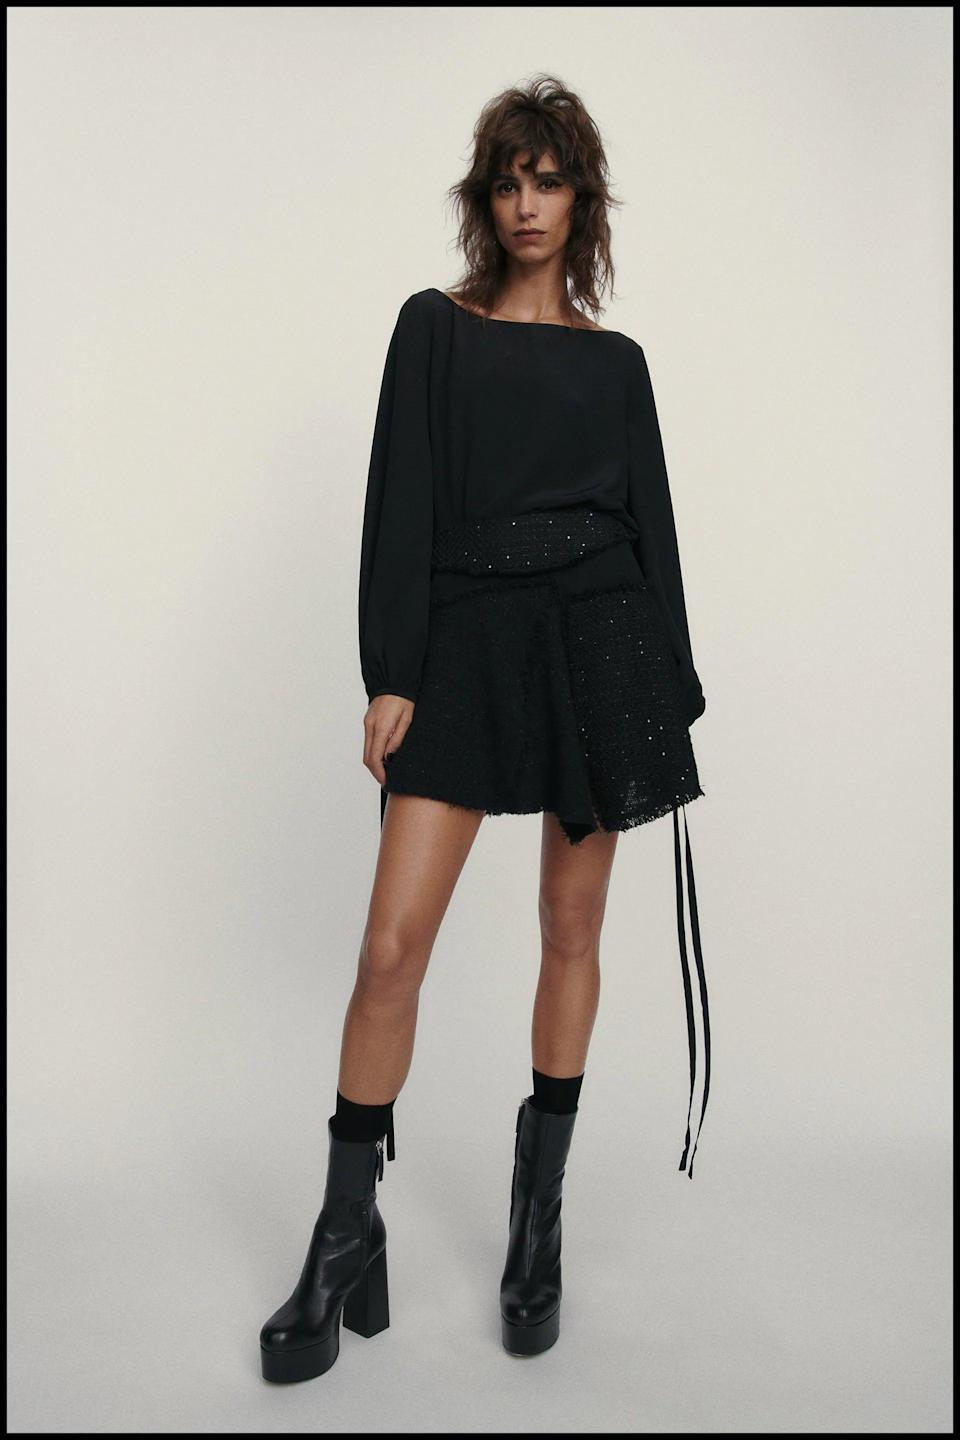 <p>Everyone needs a great black mini skirt. This <span>Zara Textured Skirt Limited Edition</span> ($70) is a winner in our books.</p>